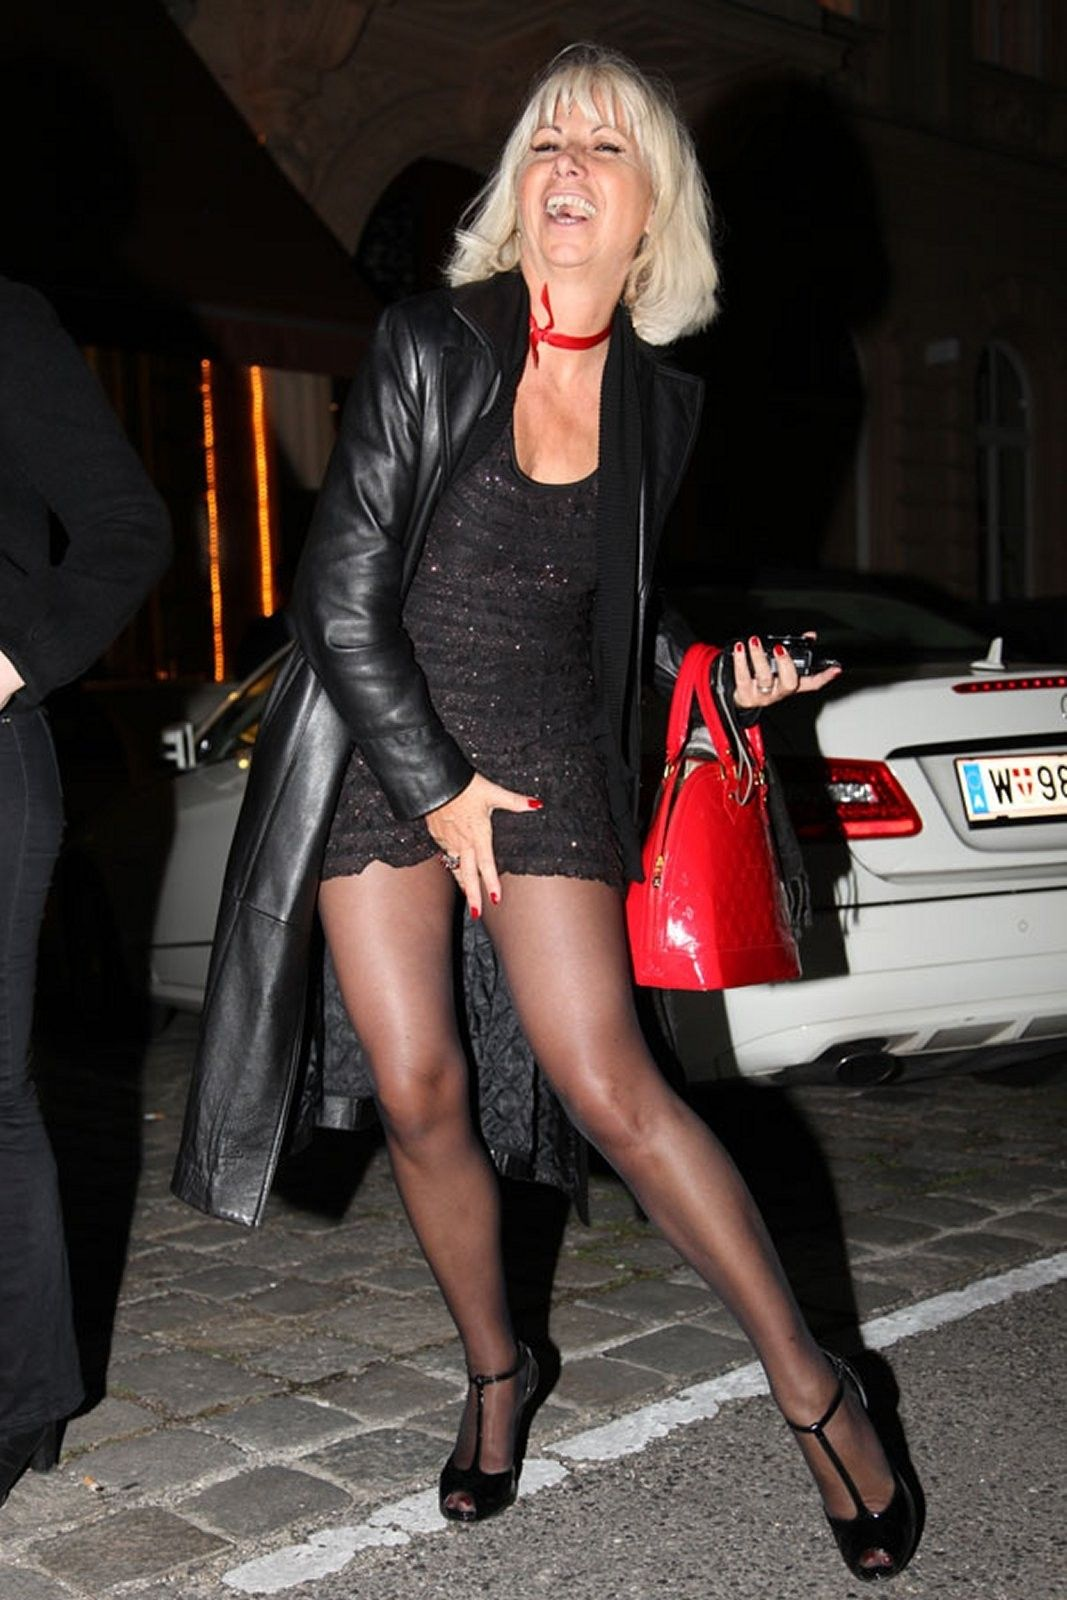 Le Meilleur Blonde Pantyhose M*T*R* S*Xy Legs Black Tights Black Ce Mois Ci